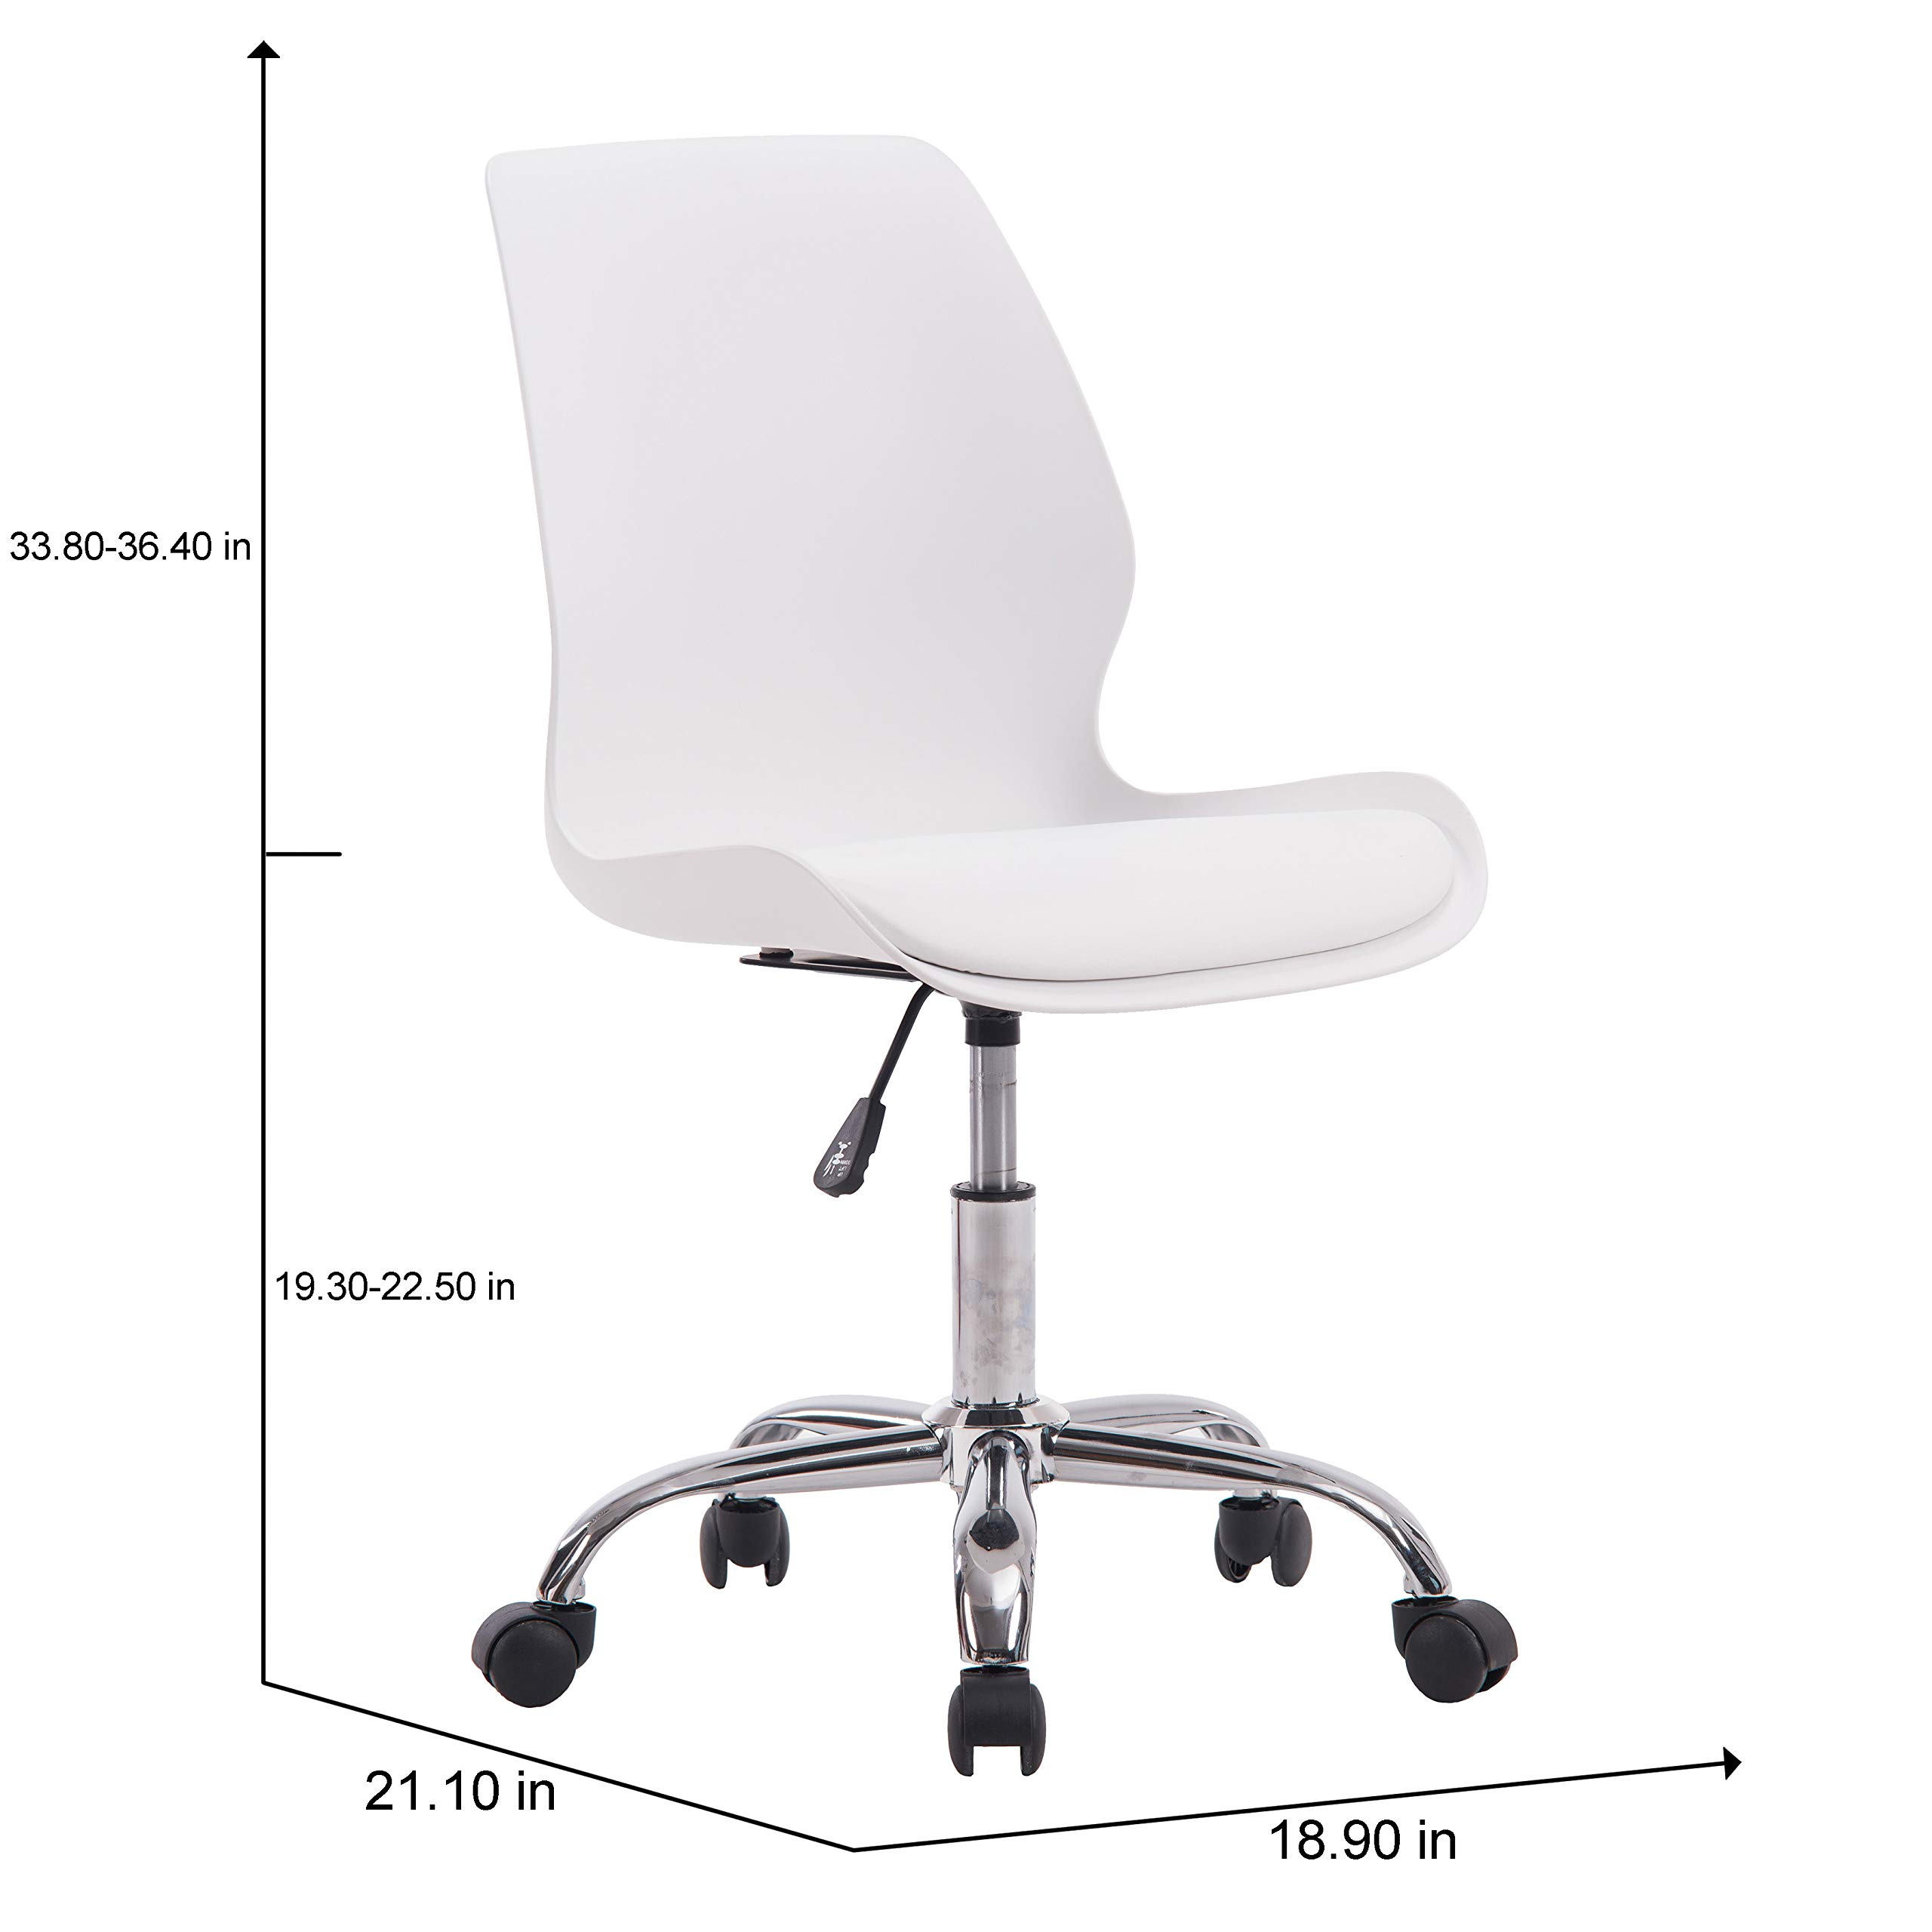 Porthos Home LVC006A WHT Adjustable Height Office Desk Chair with Wheels, Easy Assembly, White or Black, One Size by Porthos Home (Image #5)